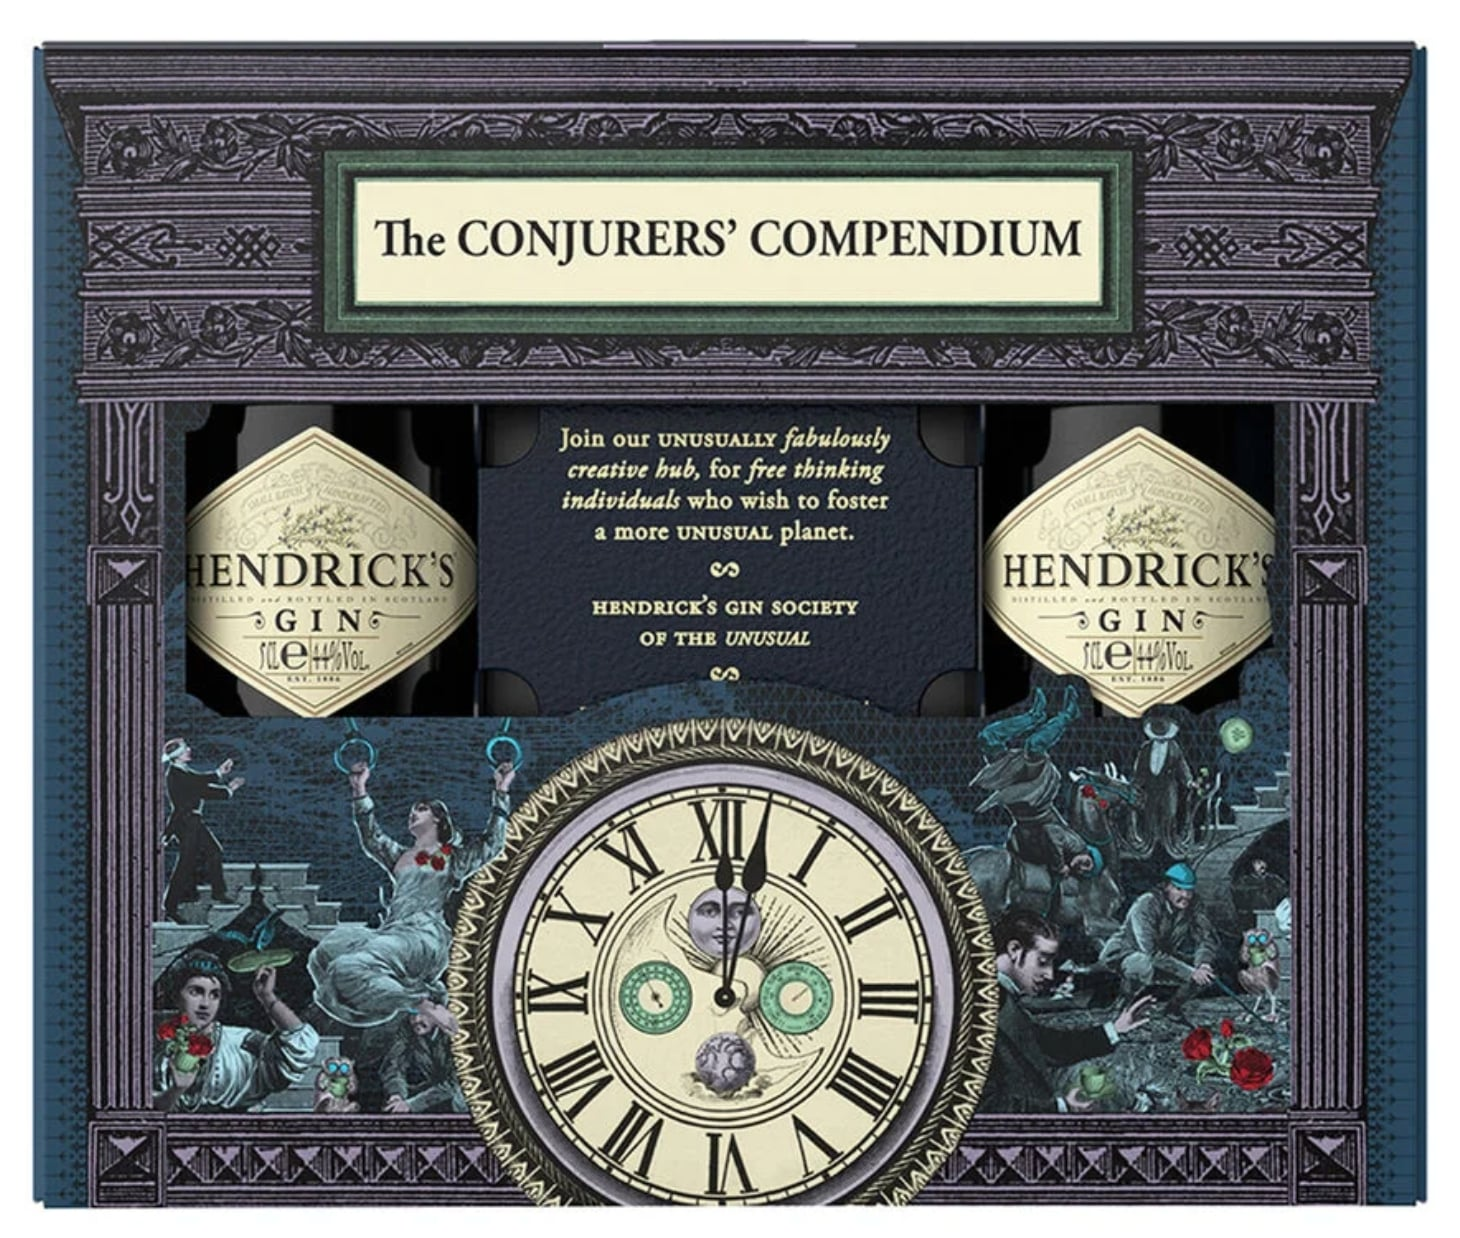 Hendricks Gin gift set available for sale at the airport